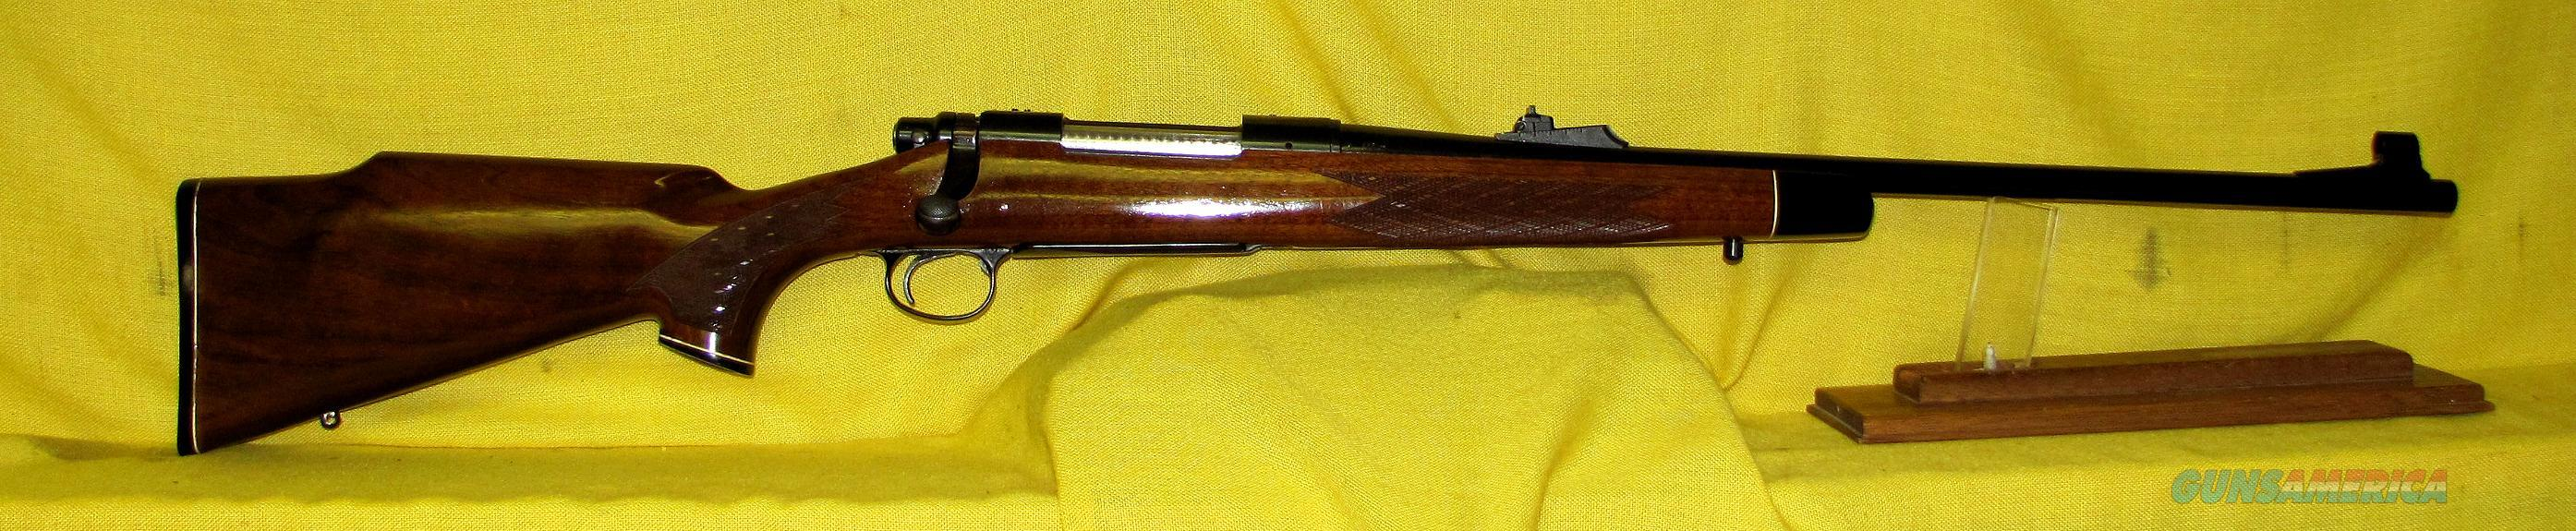 "REMINGTON 700 BDL 30/06 22""BBL SN C6251782  Guns > Rifles > Remington Rifles - Modern > Model 700 > Sporting"